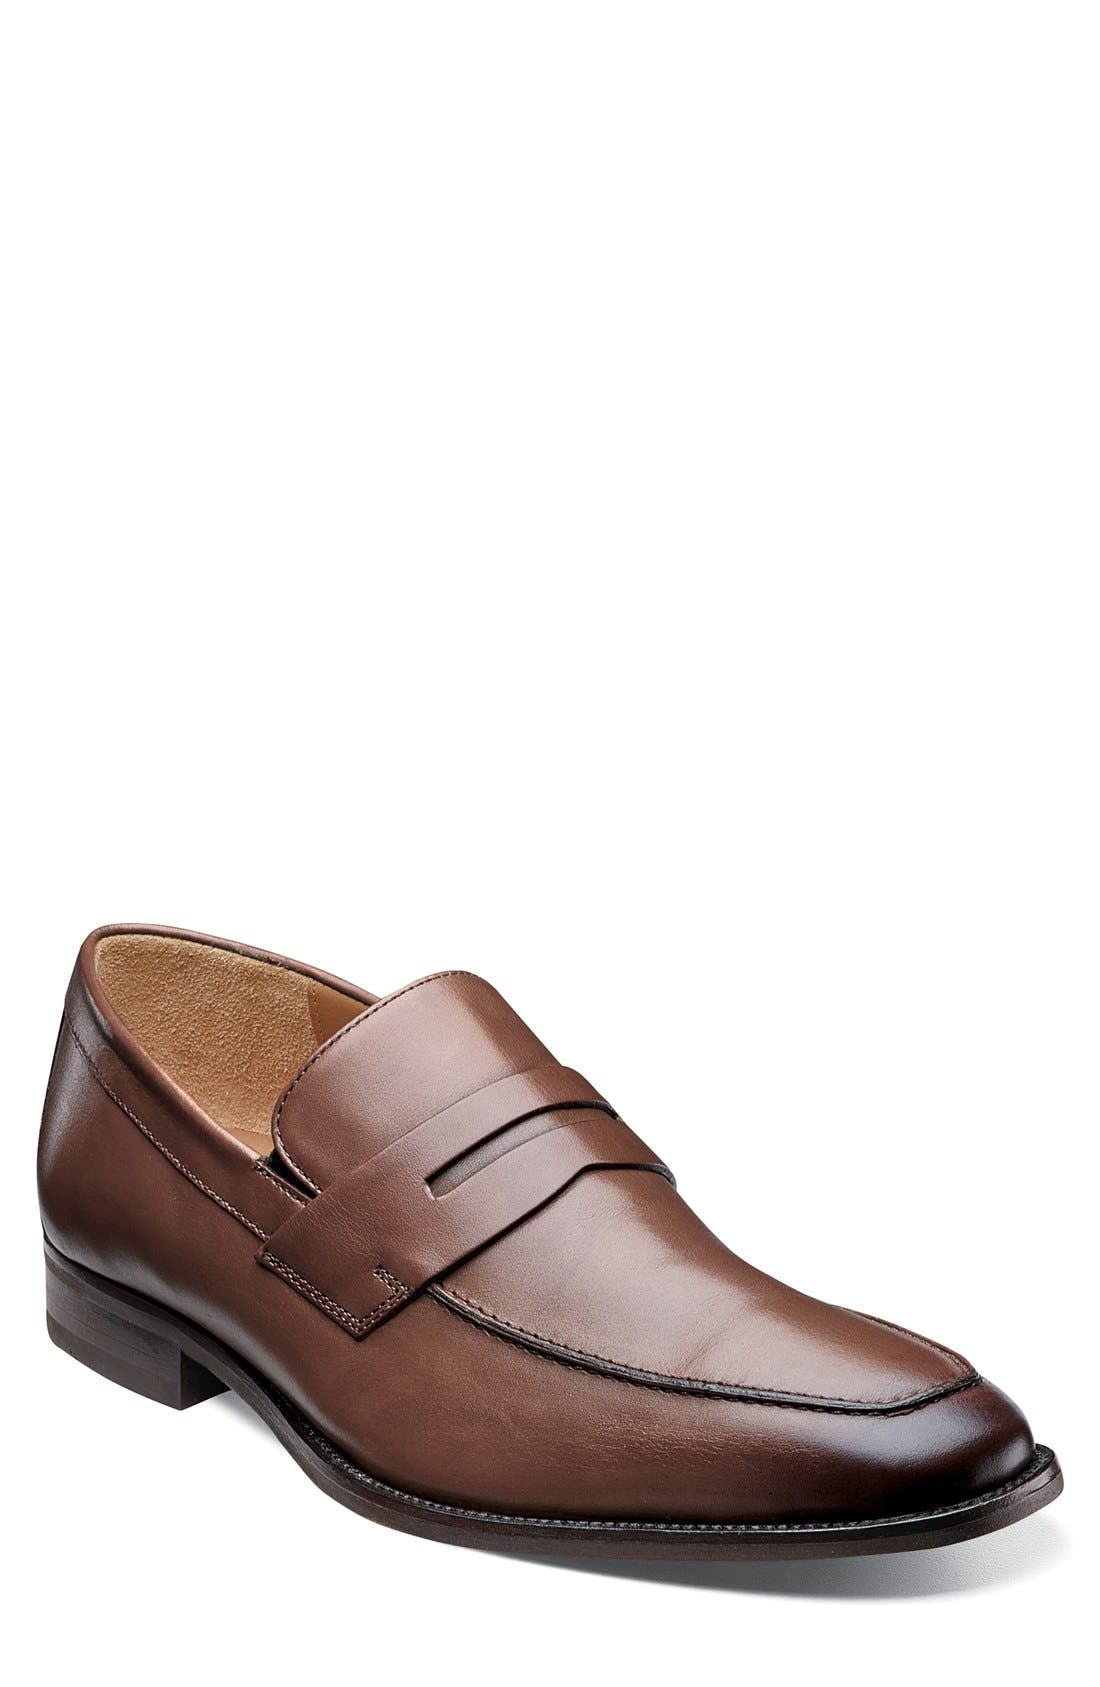 Main Image - Florsheim 'Sabato' Penny Loafer (Men)